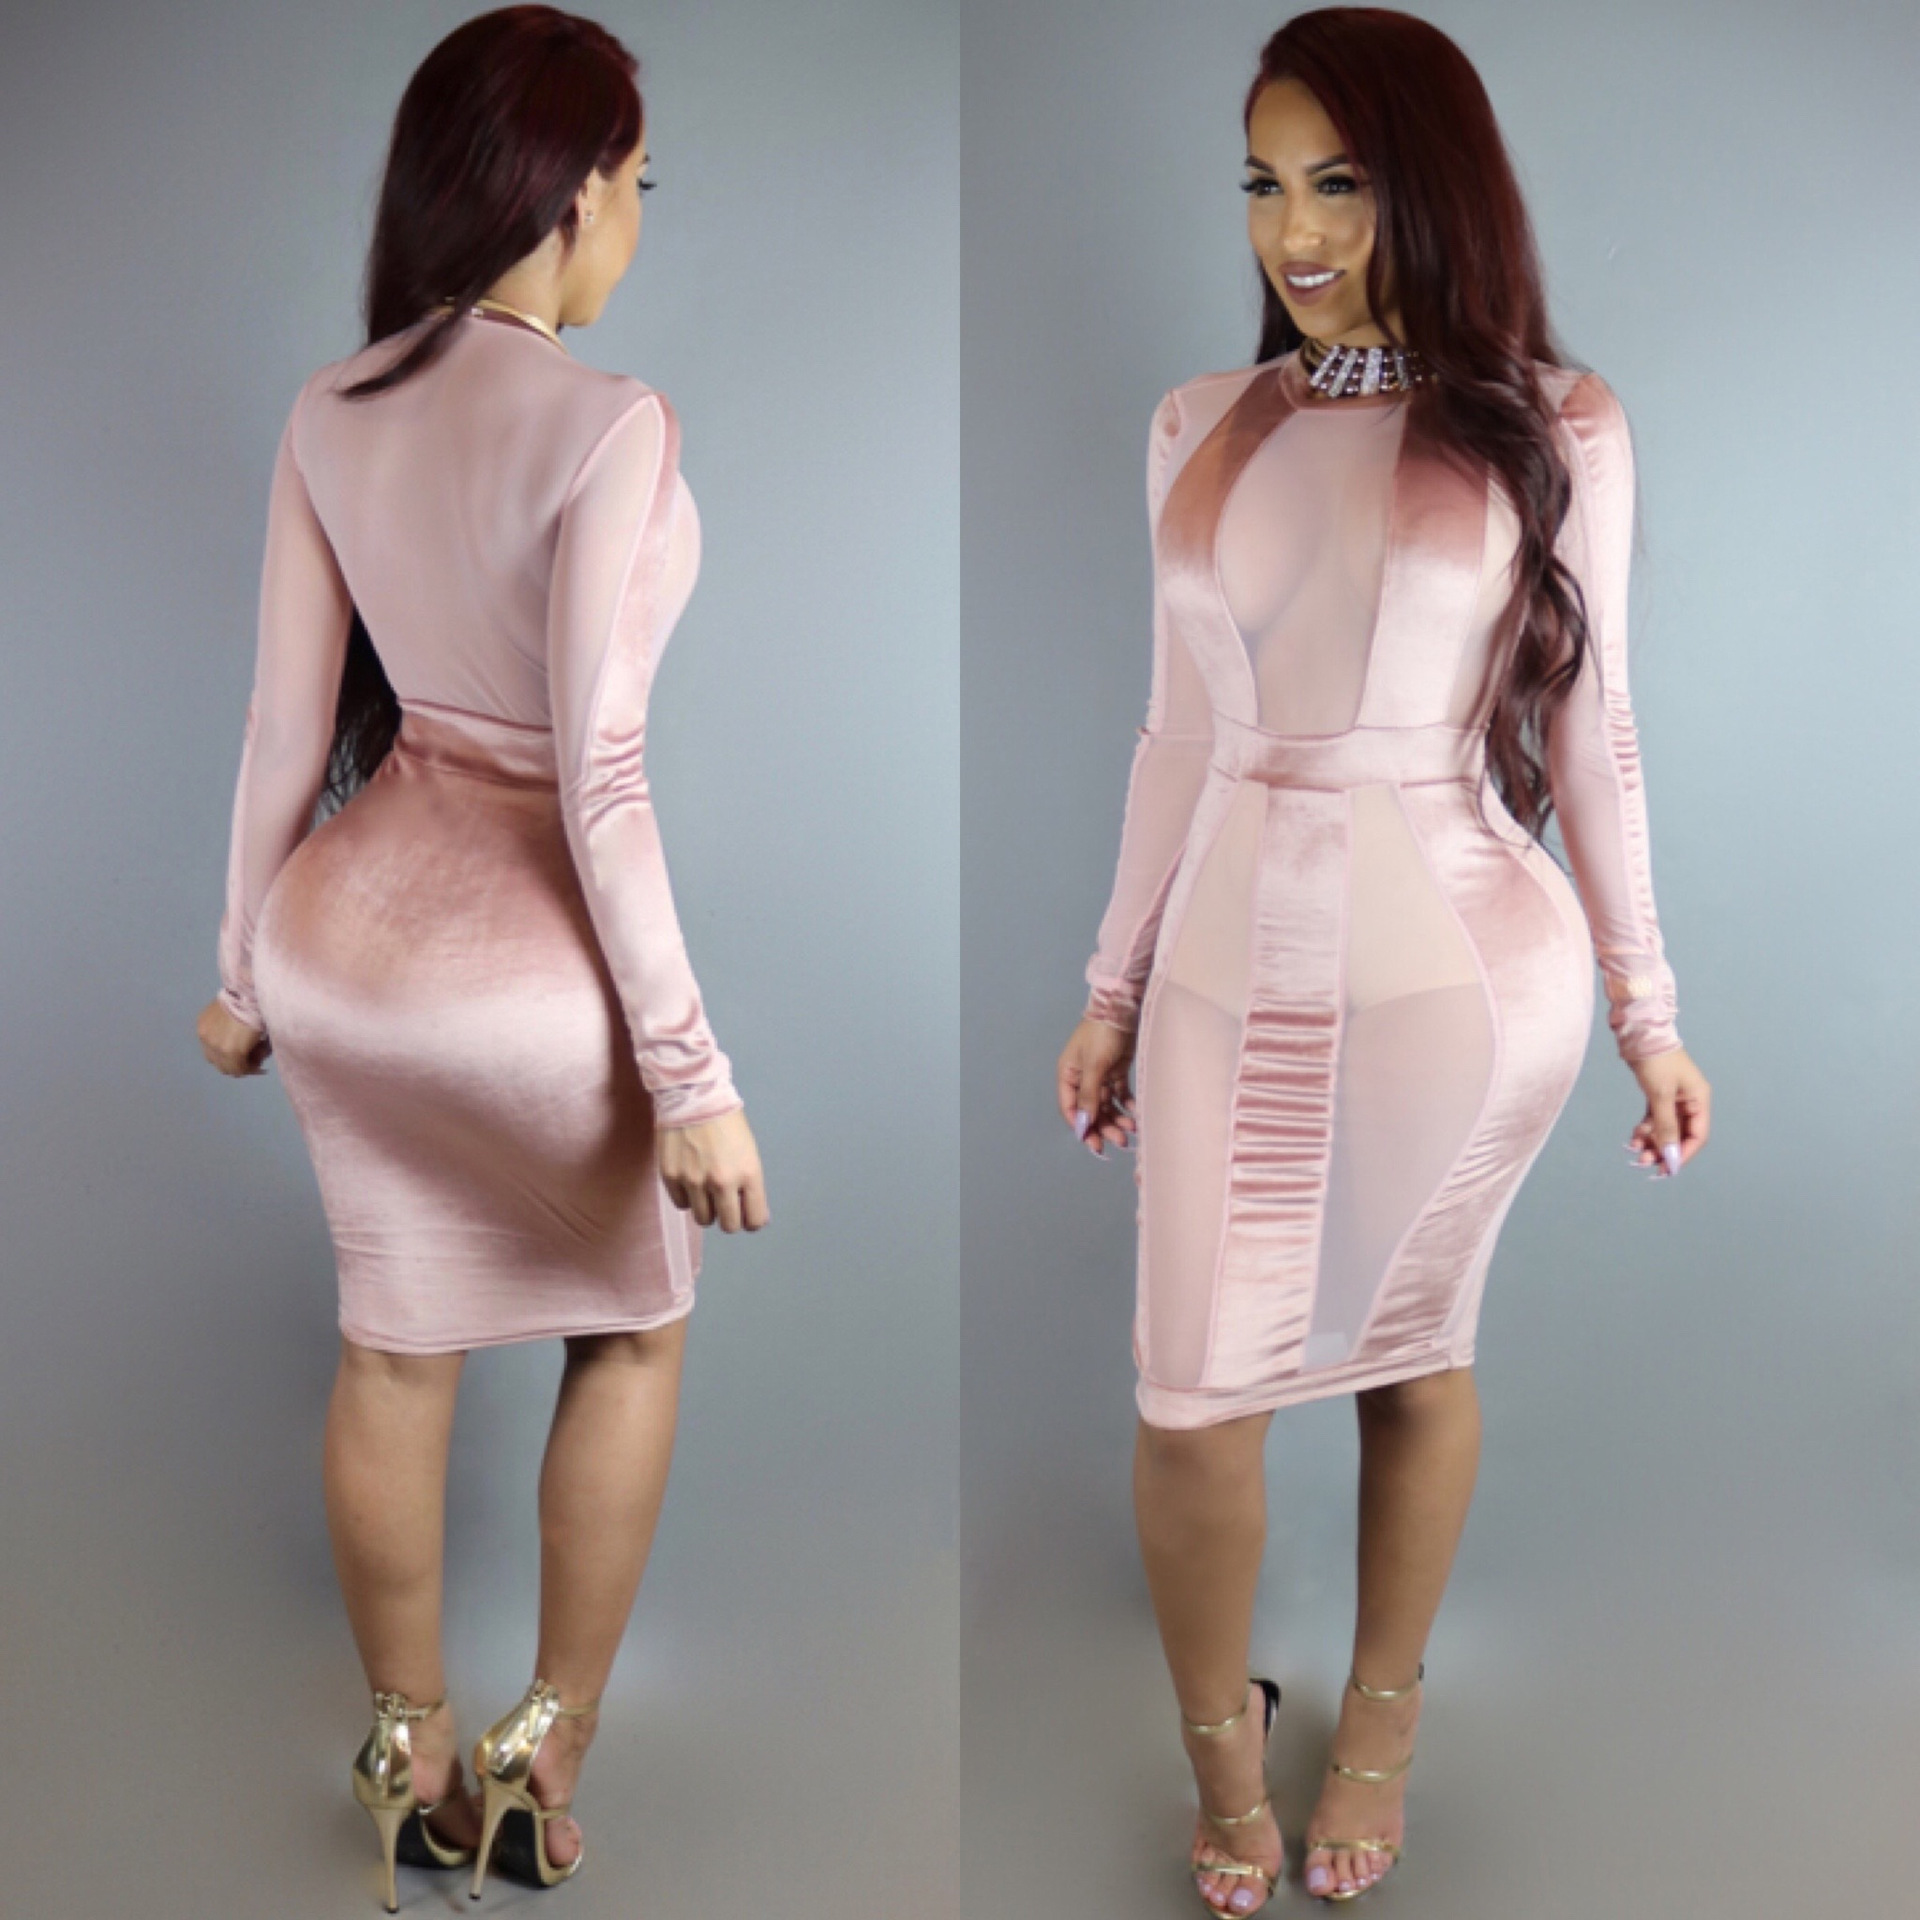 0a25a969fda2 US  6.6 - Sexy Pink Mesh Bodycon Dress with Sleeves 22508-3 - www ...